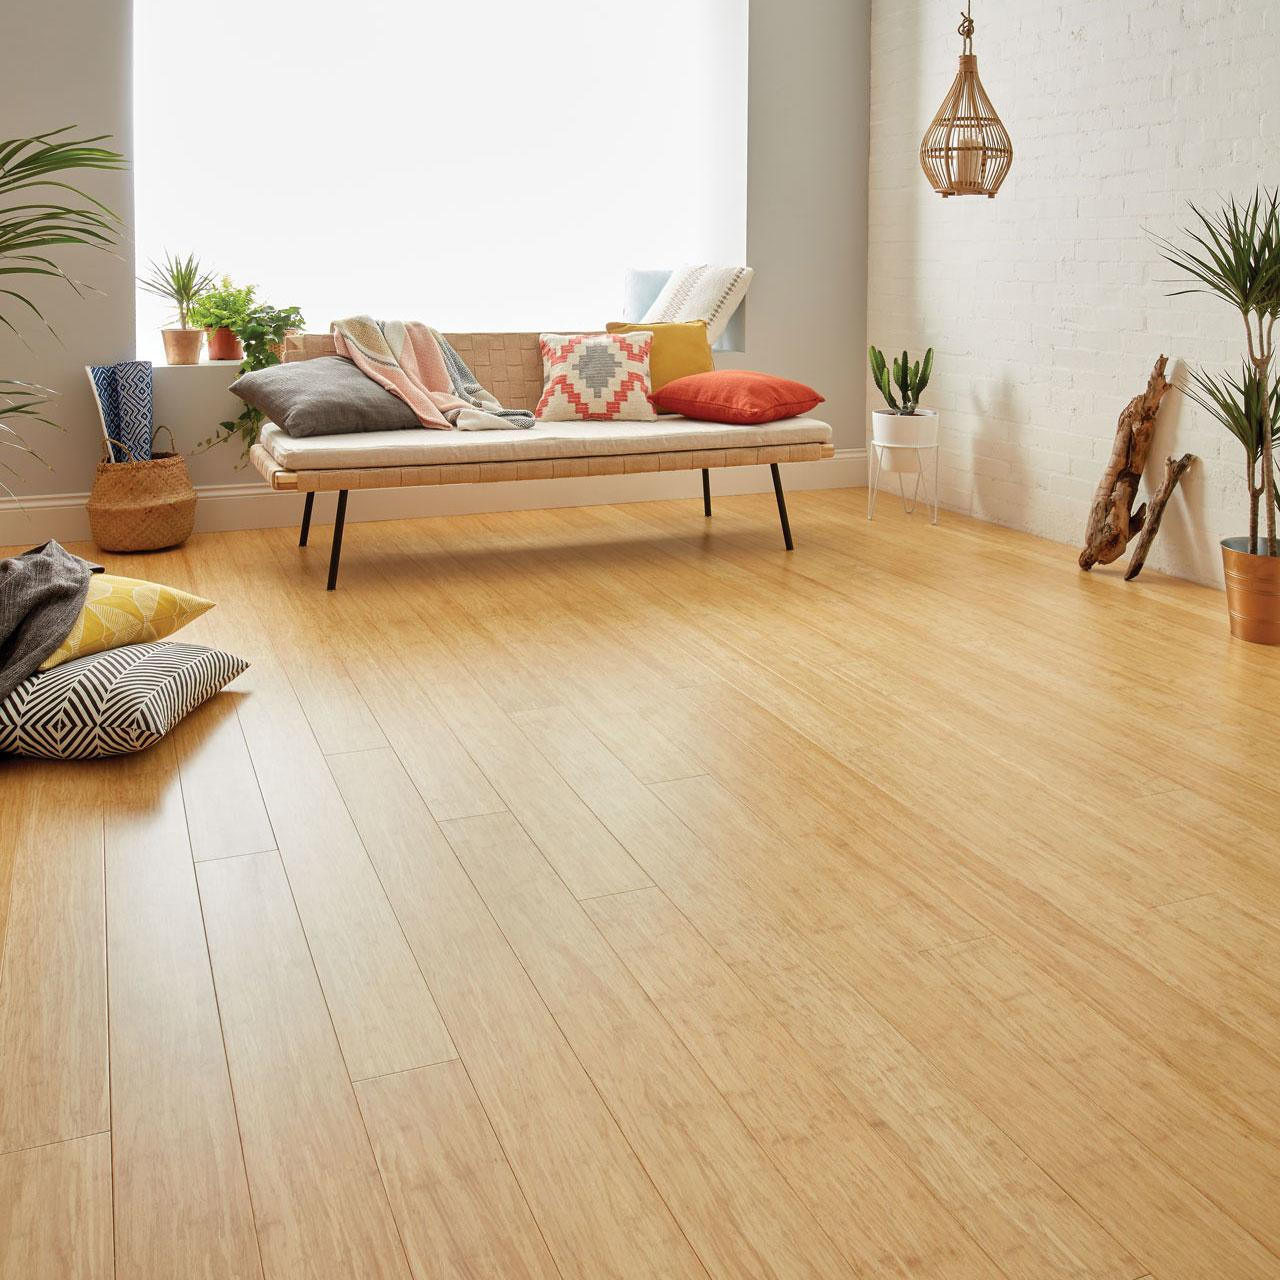 Woodpecker Oxwich Natural Strand Matt Lacquered Bamboo Flooring 20-SWN-001